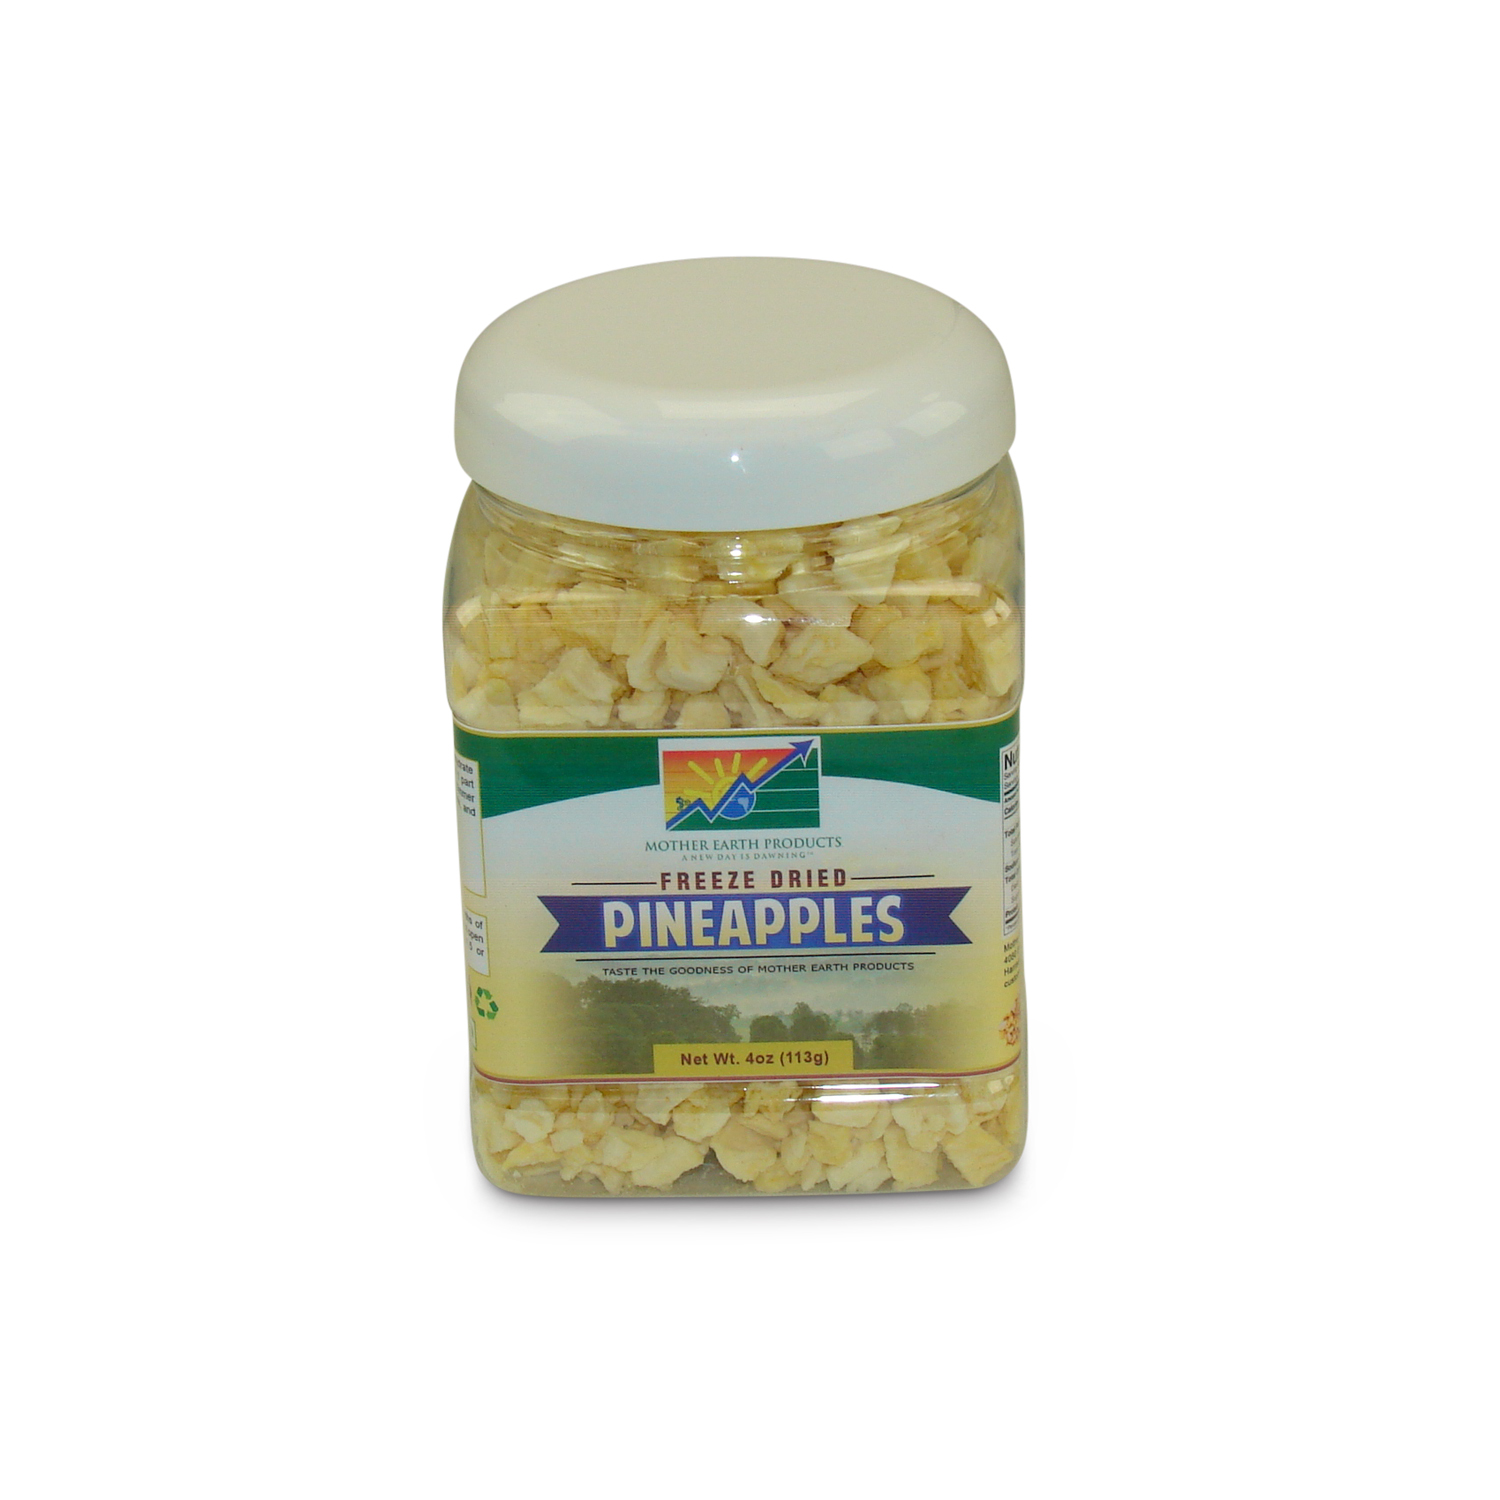 Mother Earth Products Freeze Dried Pineapples, jar by Mother Earth Products